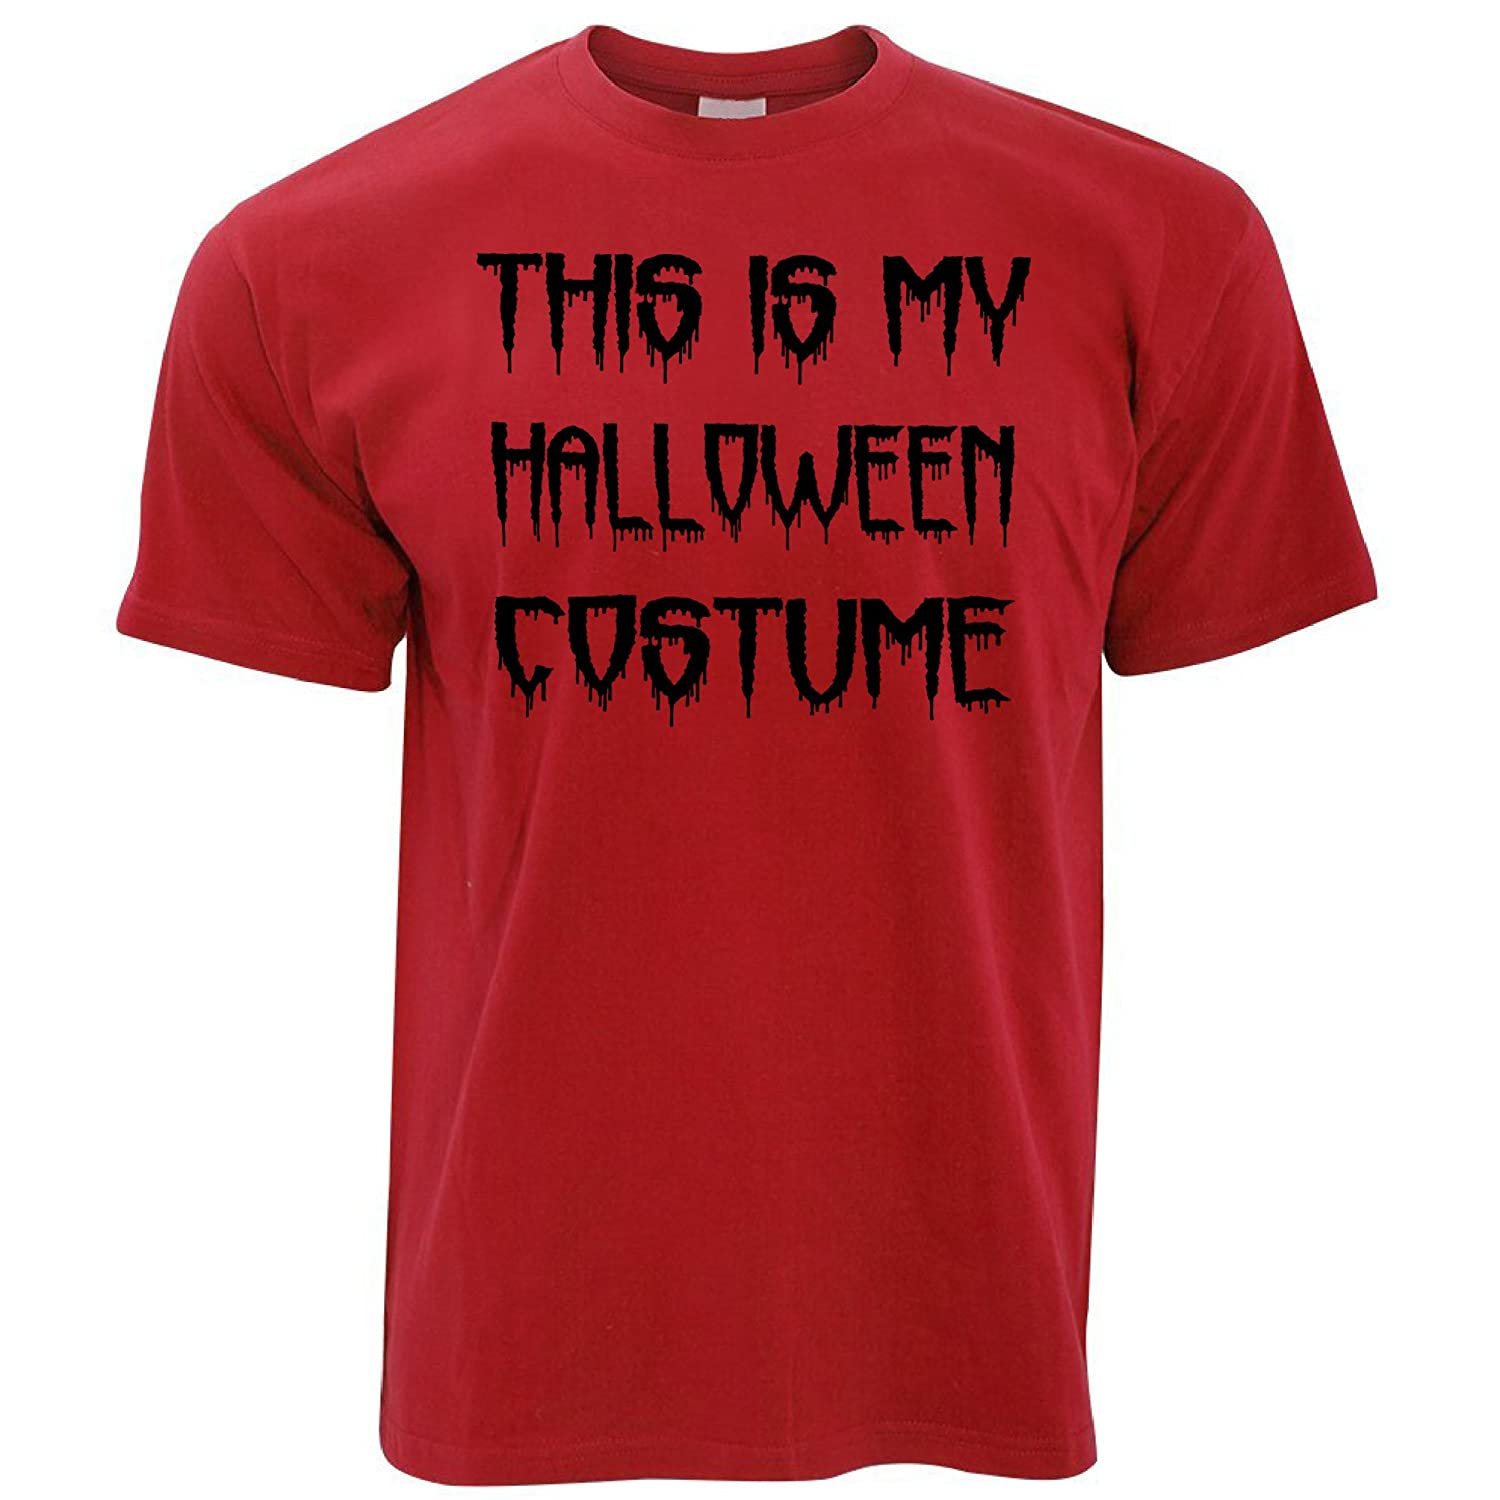 Tim And Ted This is My Halloween Costume Spooky Scary Trick Treat Dad Mom Mens T-Shirt Cool Funny Gift Present A-TS-00520x